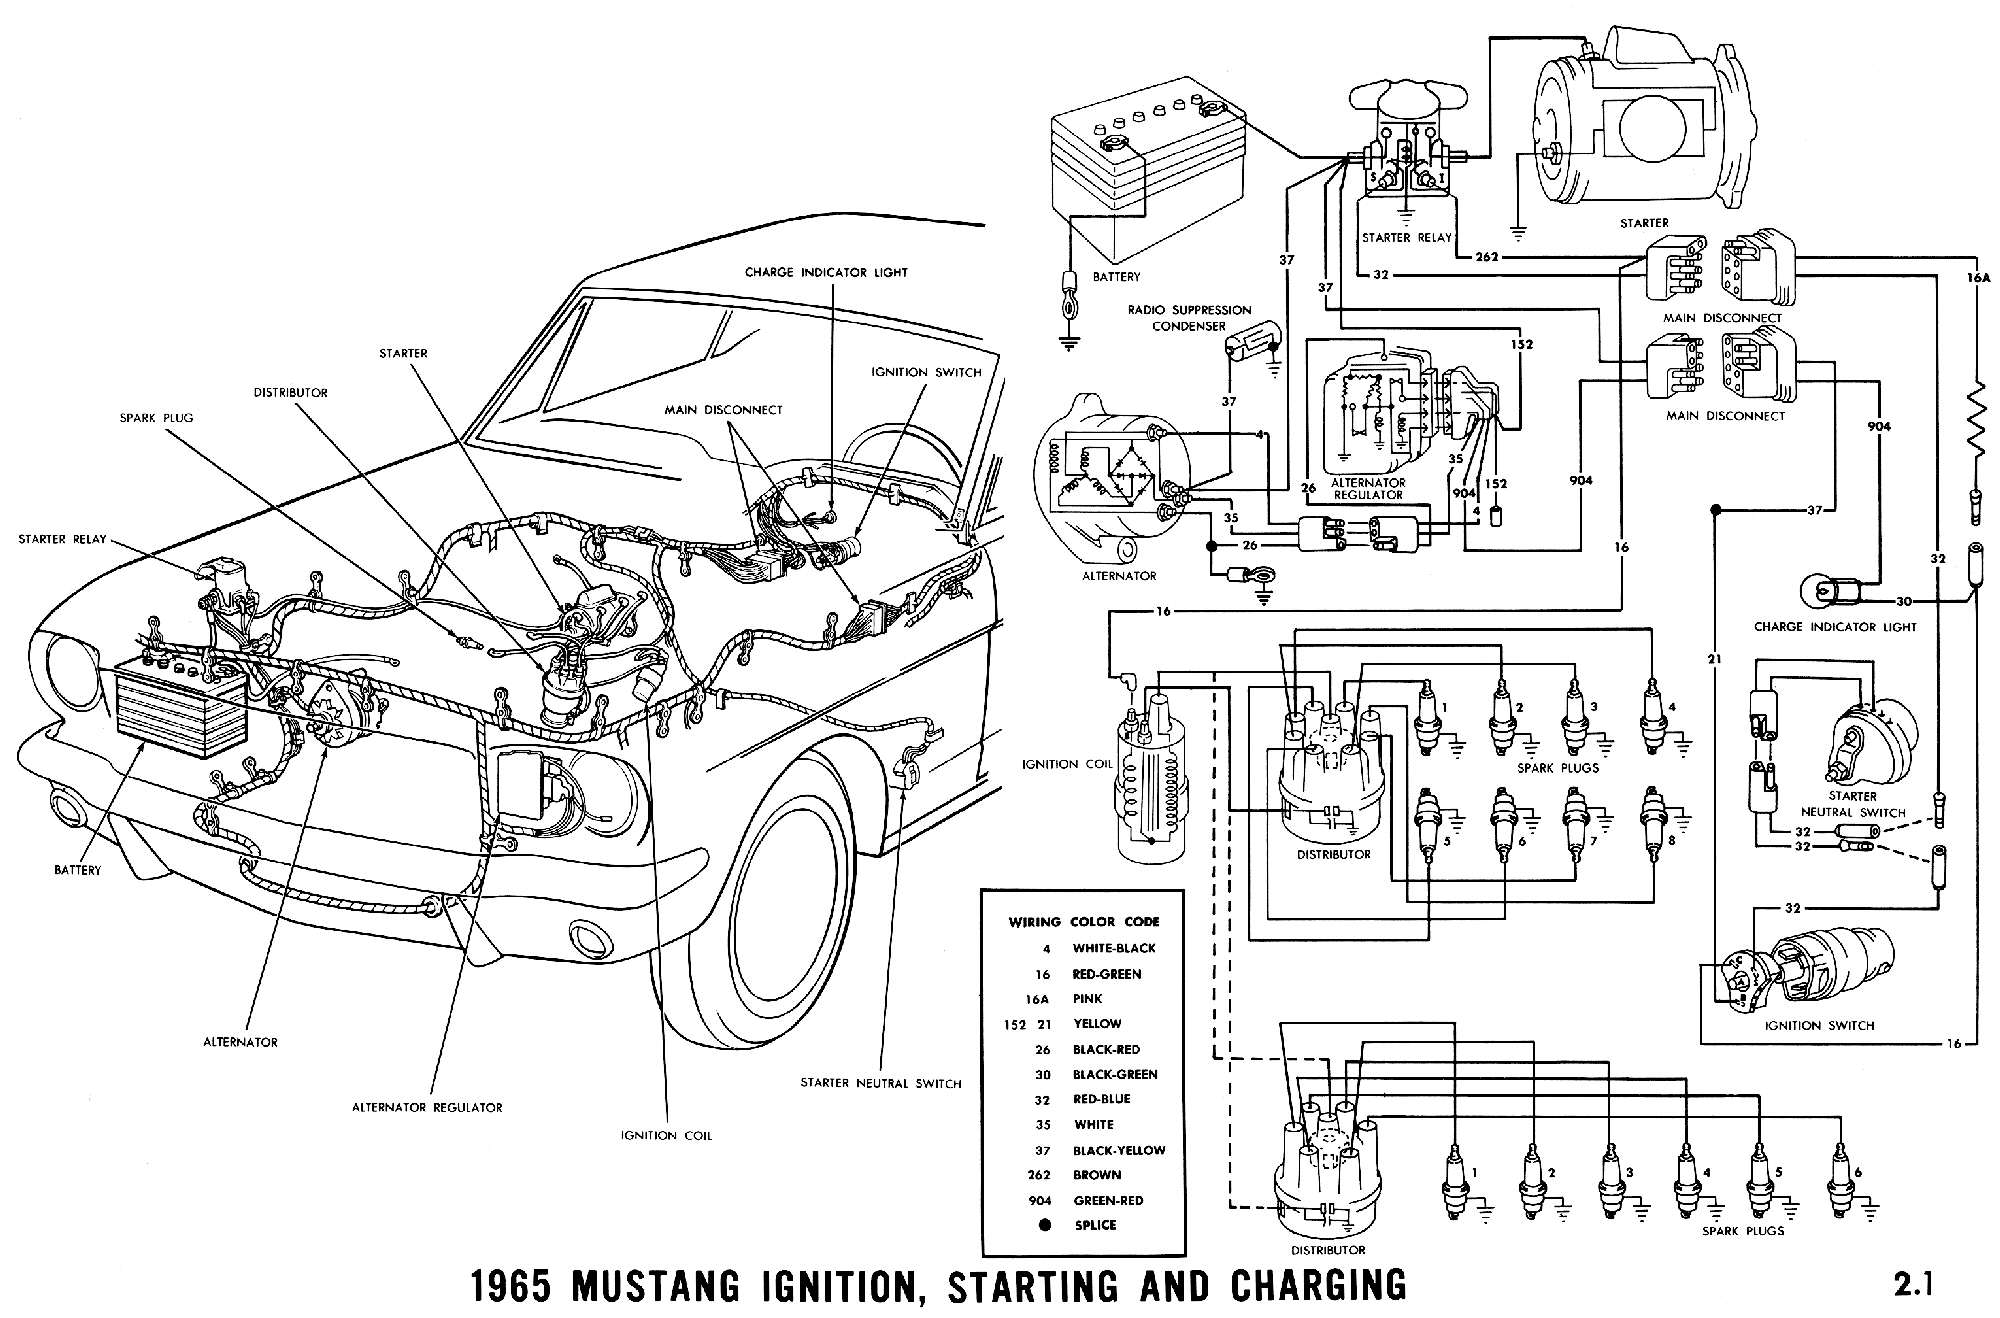 1965 ford mustang alternator wiring diagram starter relay fan ford 3g alternator wiring diagram 1965 mustang wiring diagrams average joe restoration1965 mustang ignition, starting and charging pictorial and schematic